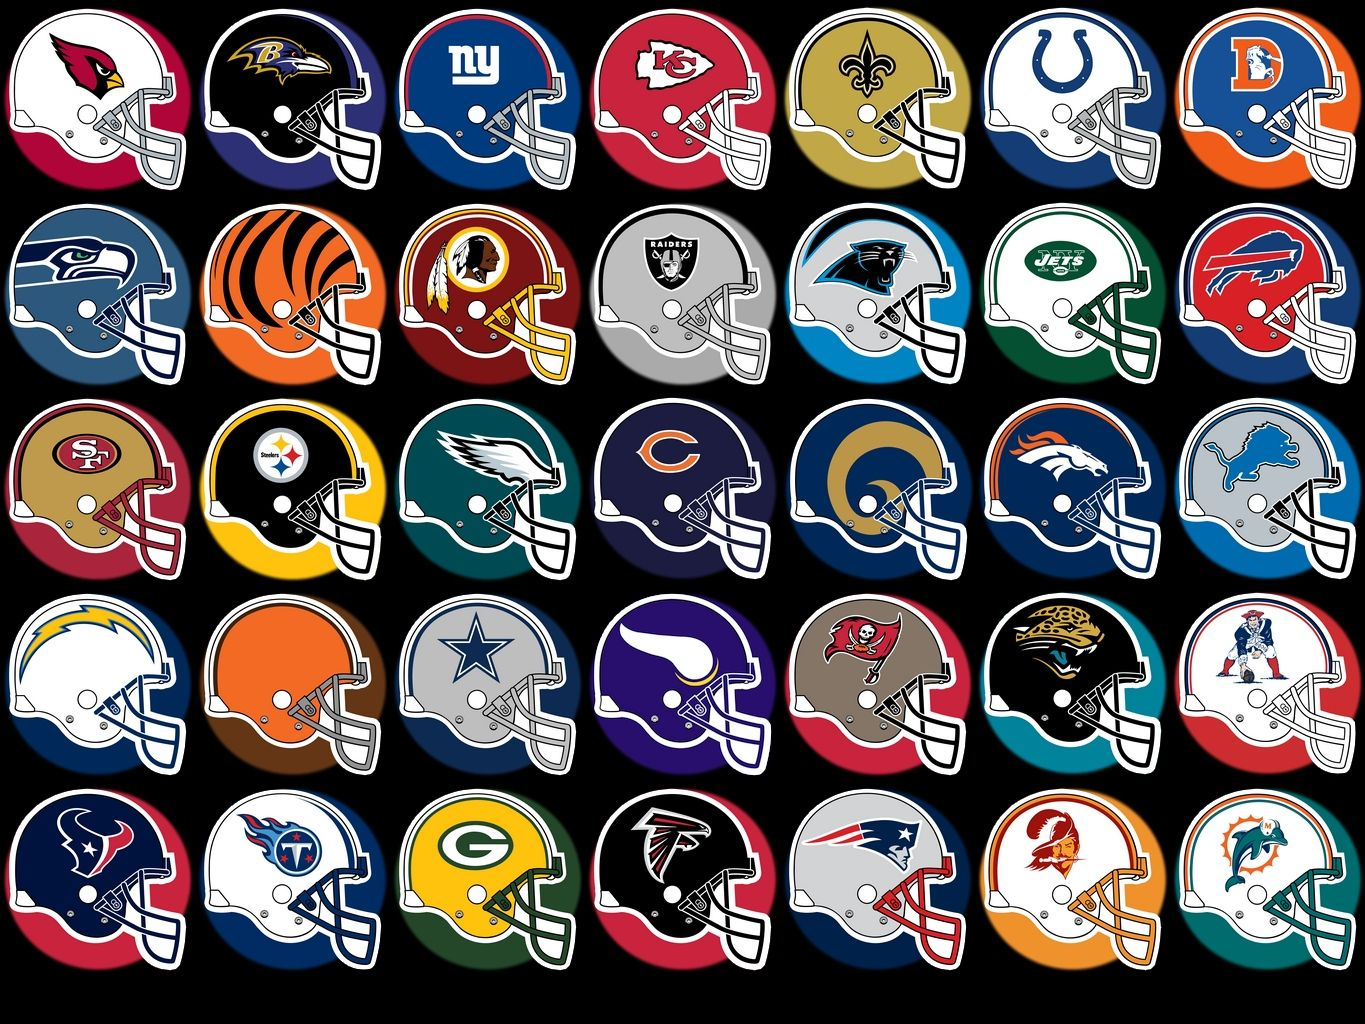 How to draw nfl logo page 2 - Nfl Printable Logos Google Search